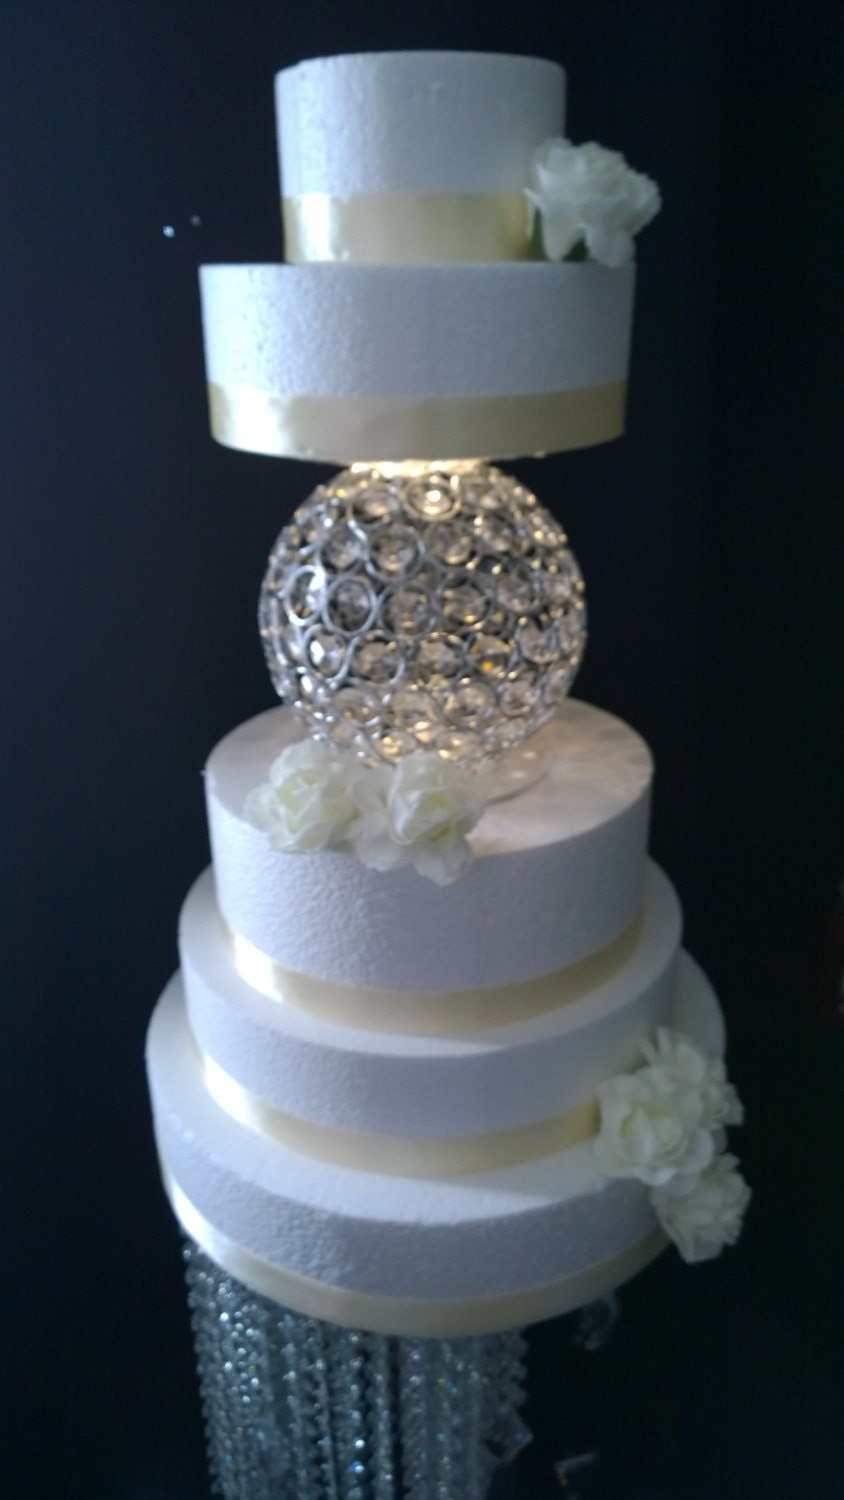 Sphere Shape Crystal Cake Separator 2 Sizes - Sphere Wedding Cake